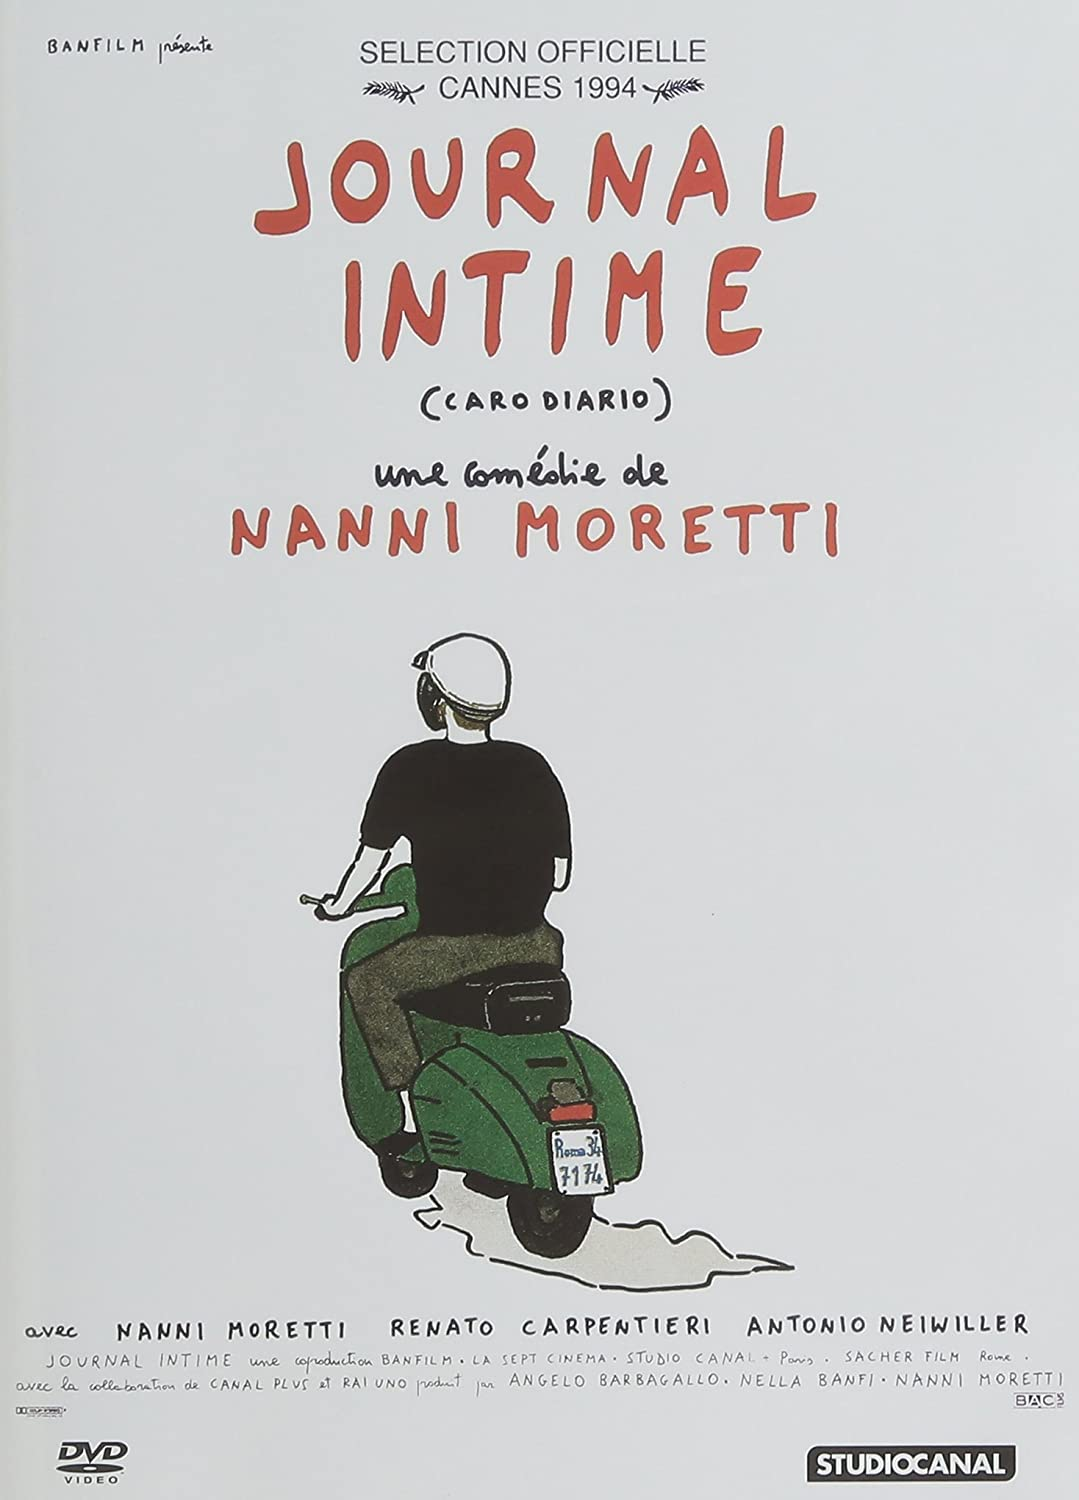 INTIME MORETTI JOURNAL TÉLÉCHARGER NANNI